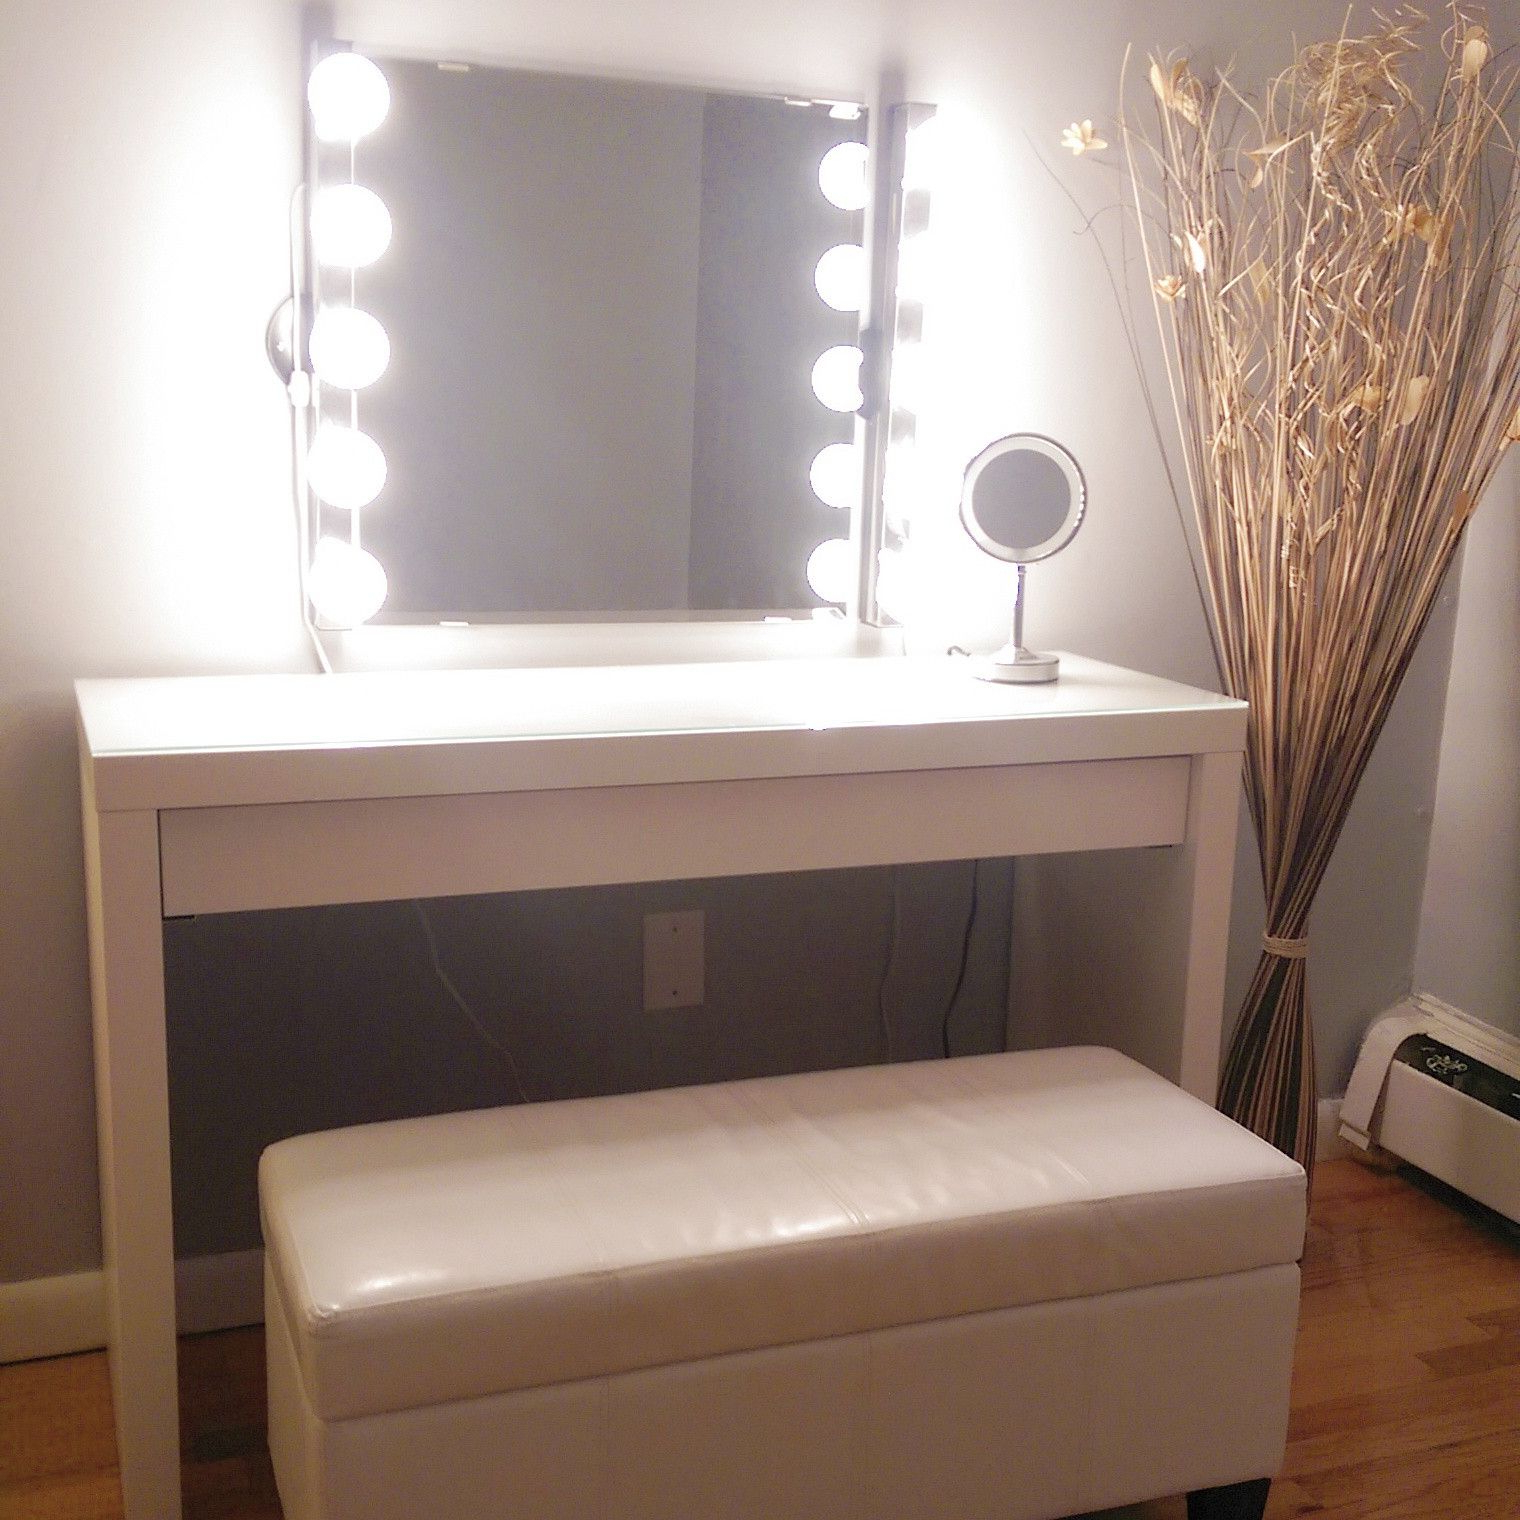 Fashionable Love The Bench, Wall Mirror Is Kolja Mirror From Ikea, Lights Are Intended For Ikea Wall Mirrors (View 5 of 20)